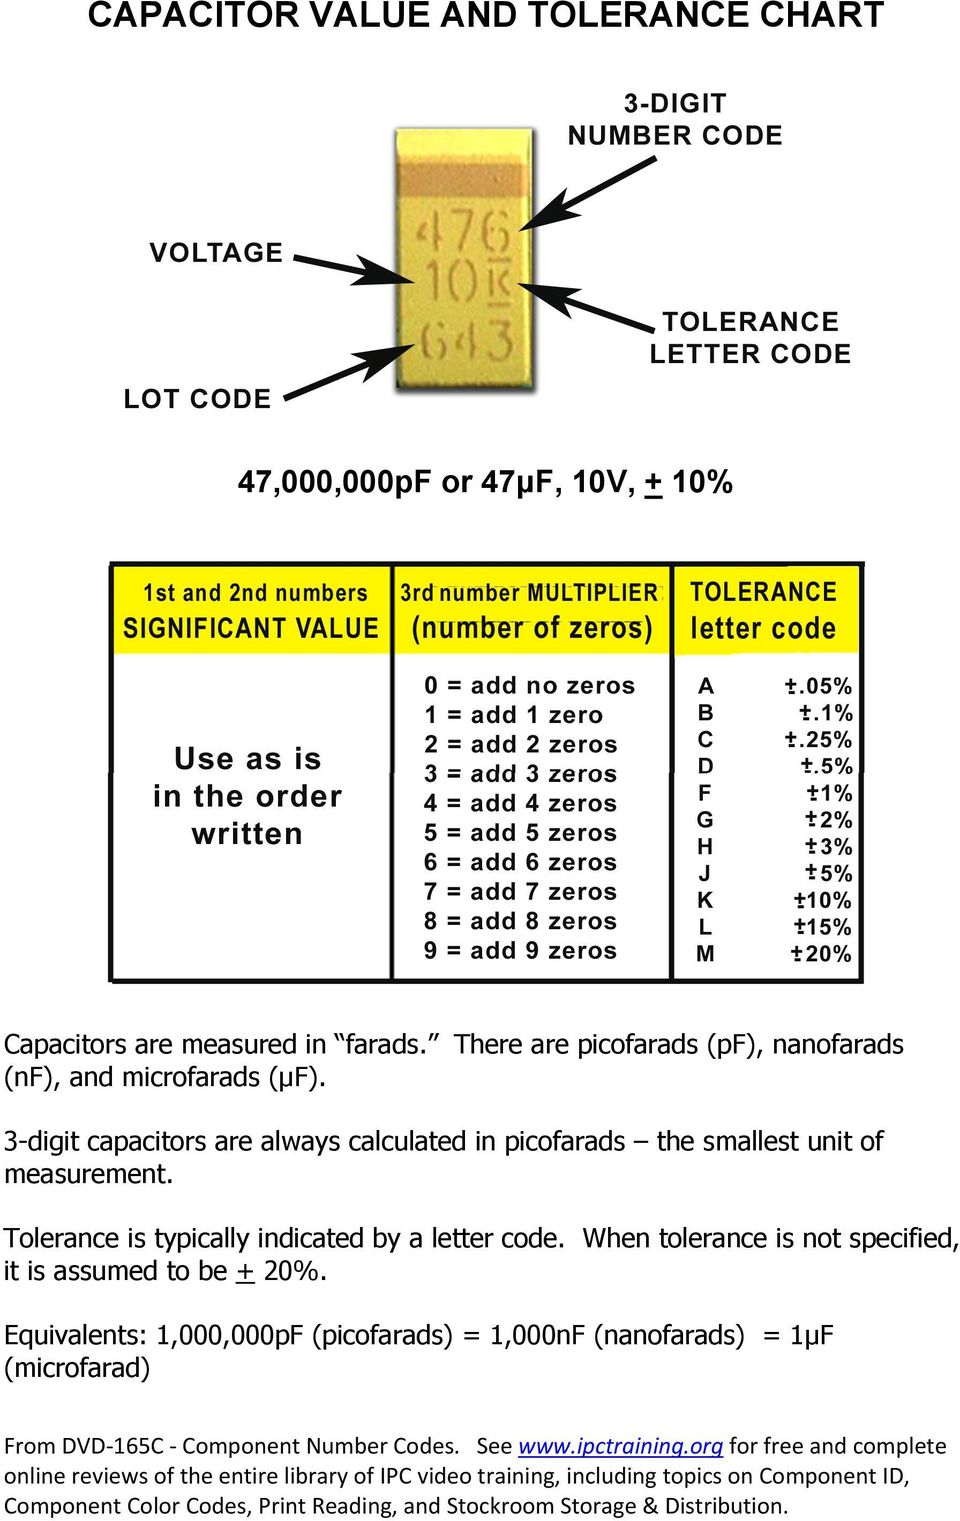 Component Number Code Charts V1 Pdf Resistor Symbols Colour Tolerance Power Ratings Resistance 3 Digit Capacitors Are Always Calculated In Picofarads The Smallest Unit Of Measurement